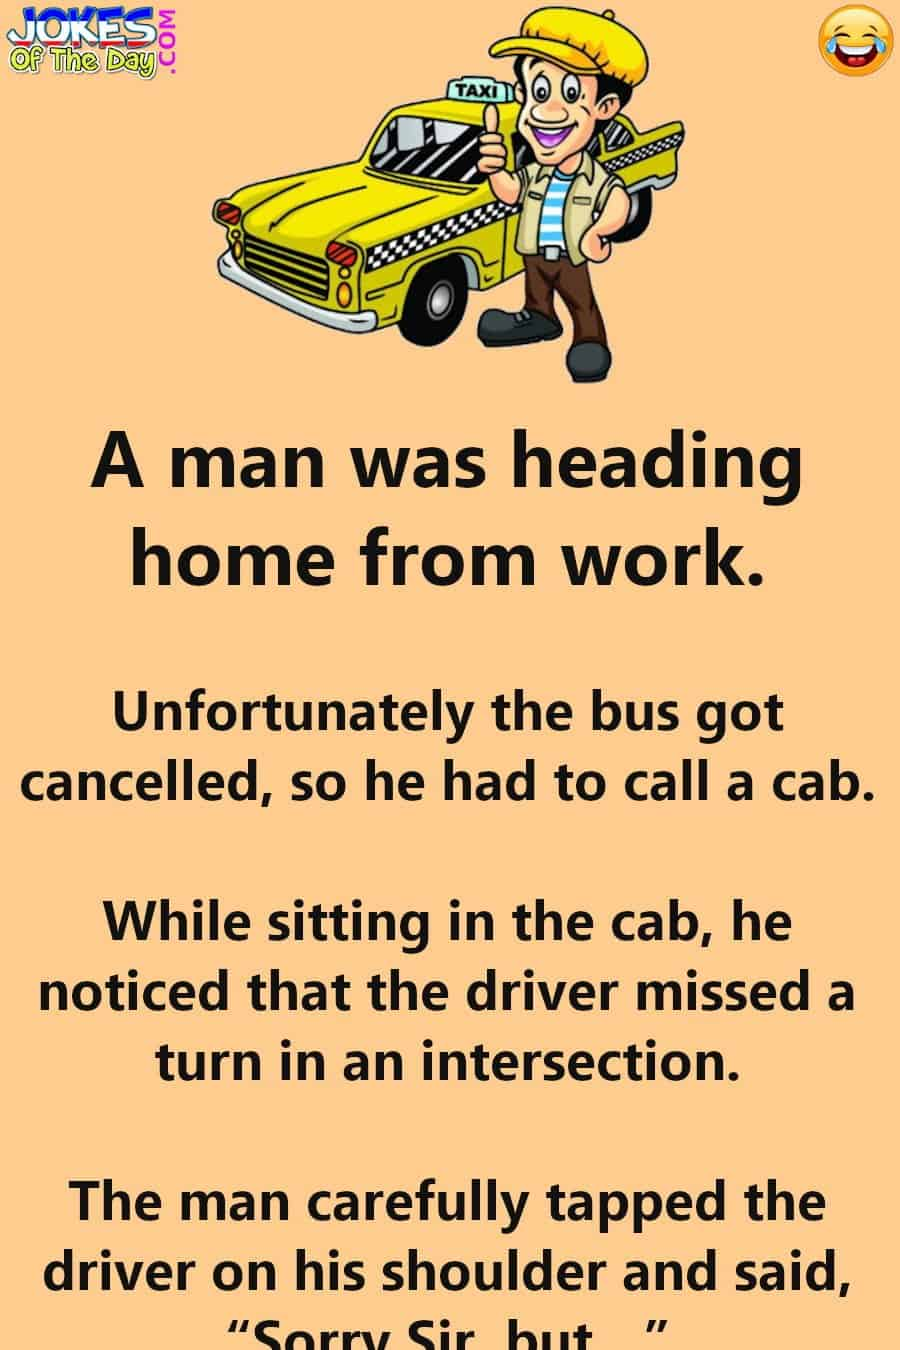 Joke - He Taps The Cabbie On The Shoulder - And Hell Breaks Loose